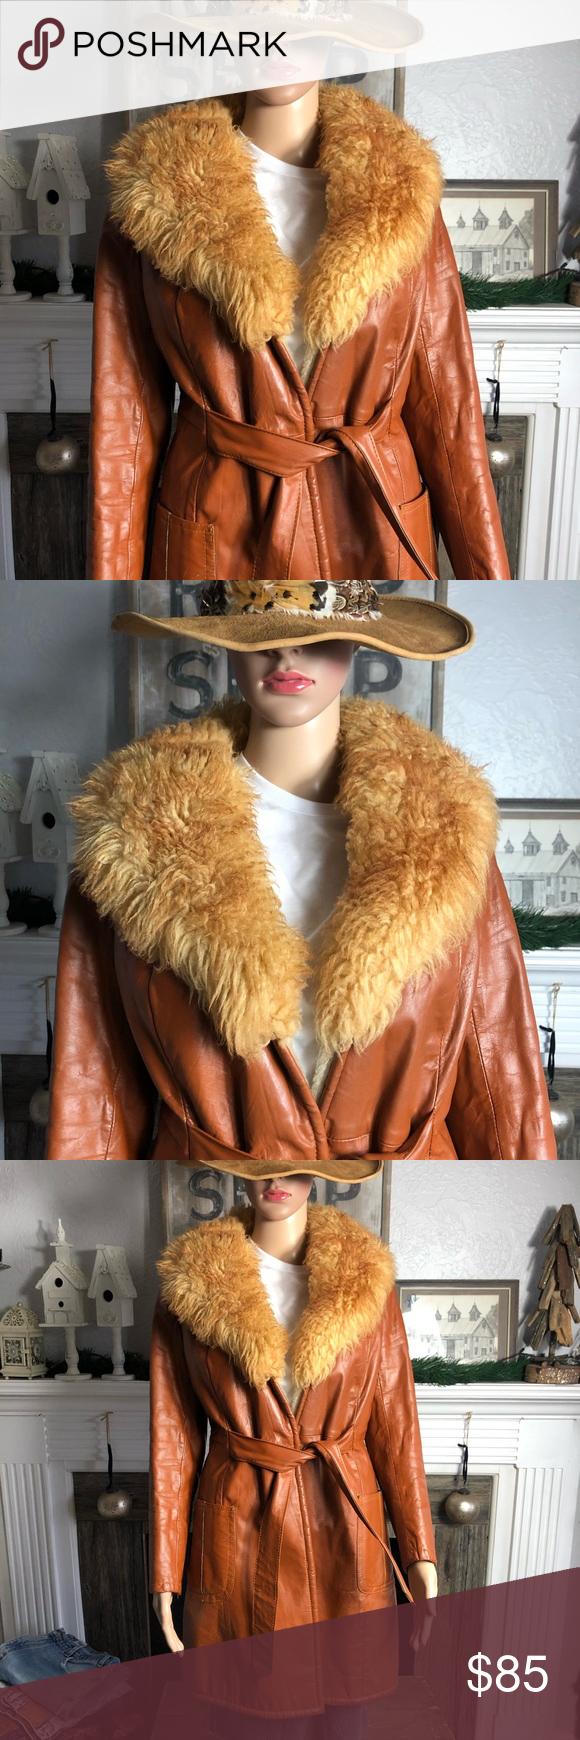 STUNNING Vintage Leather & Faux Fur Jacket High quality